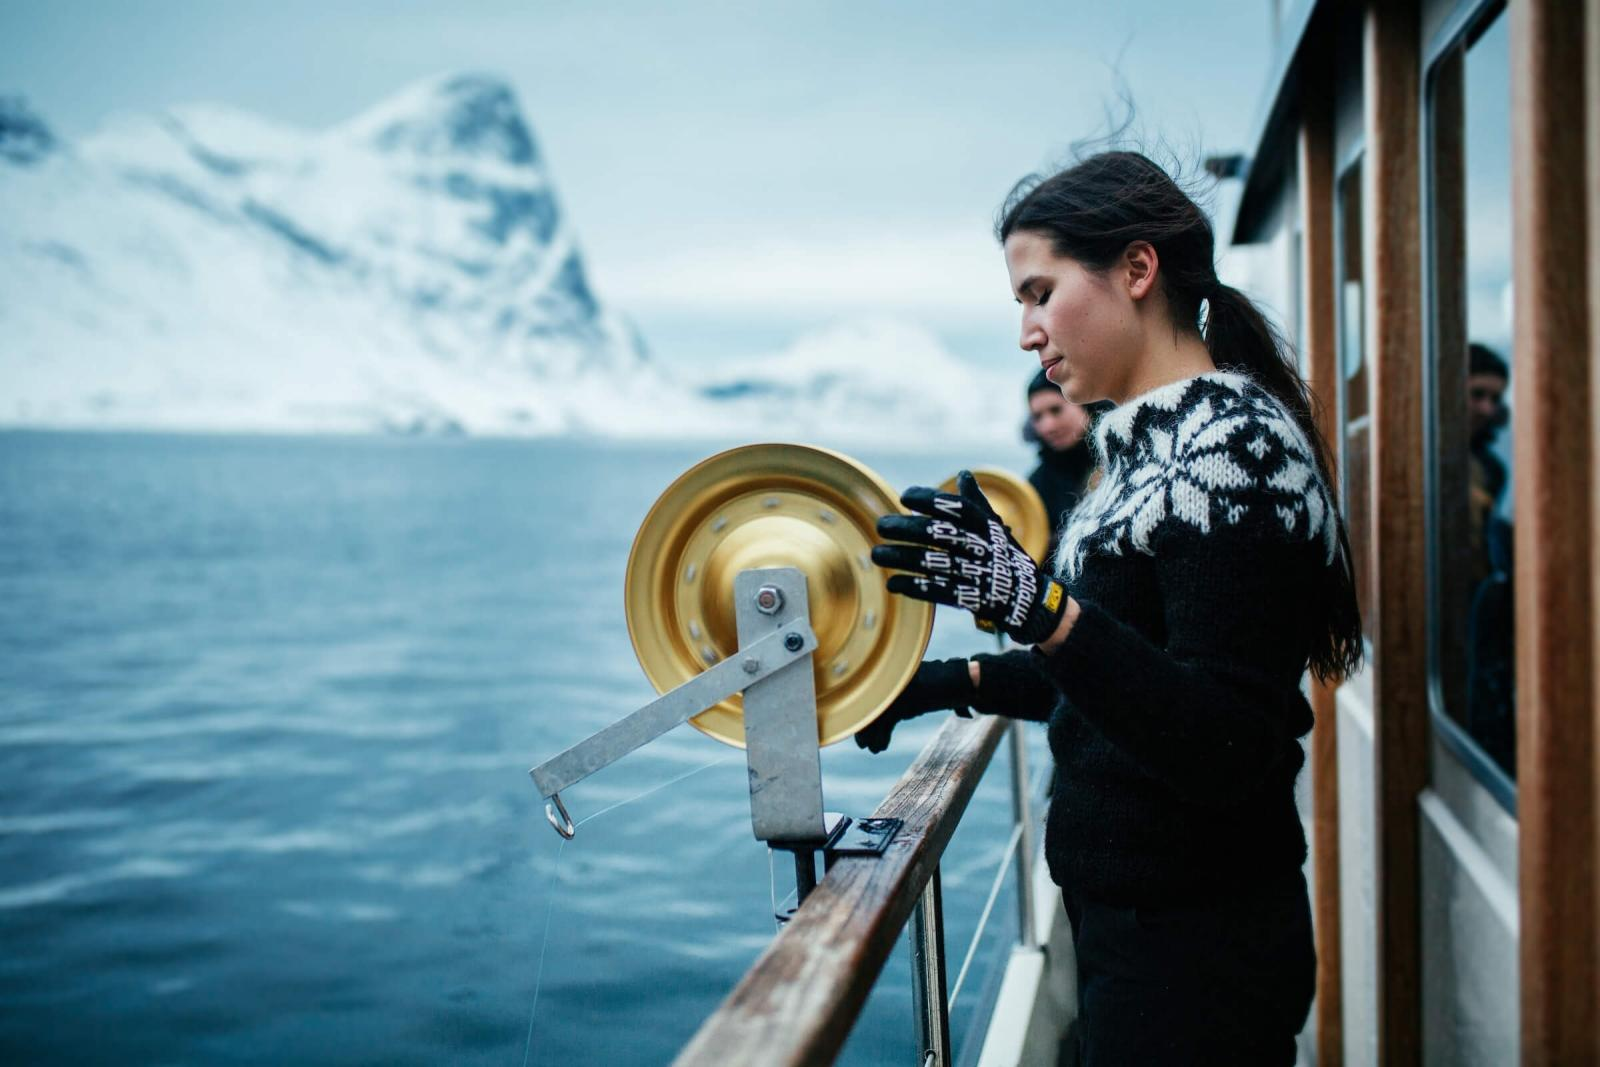 The deckhand Line fishing on a tour with Arctic Boat Charter in the Nuuk fjord in Greenland. Photo by Rebecca Gustafsson